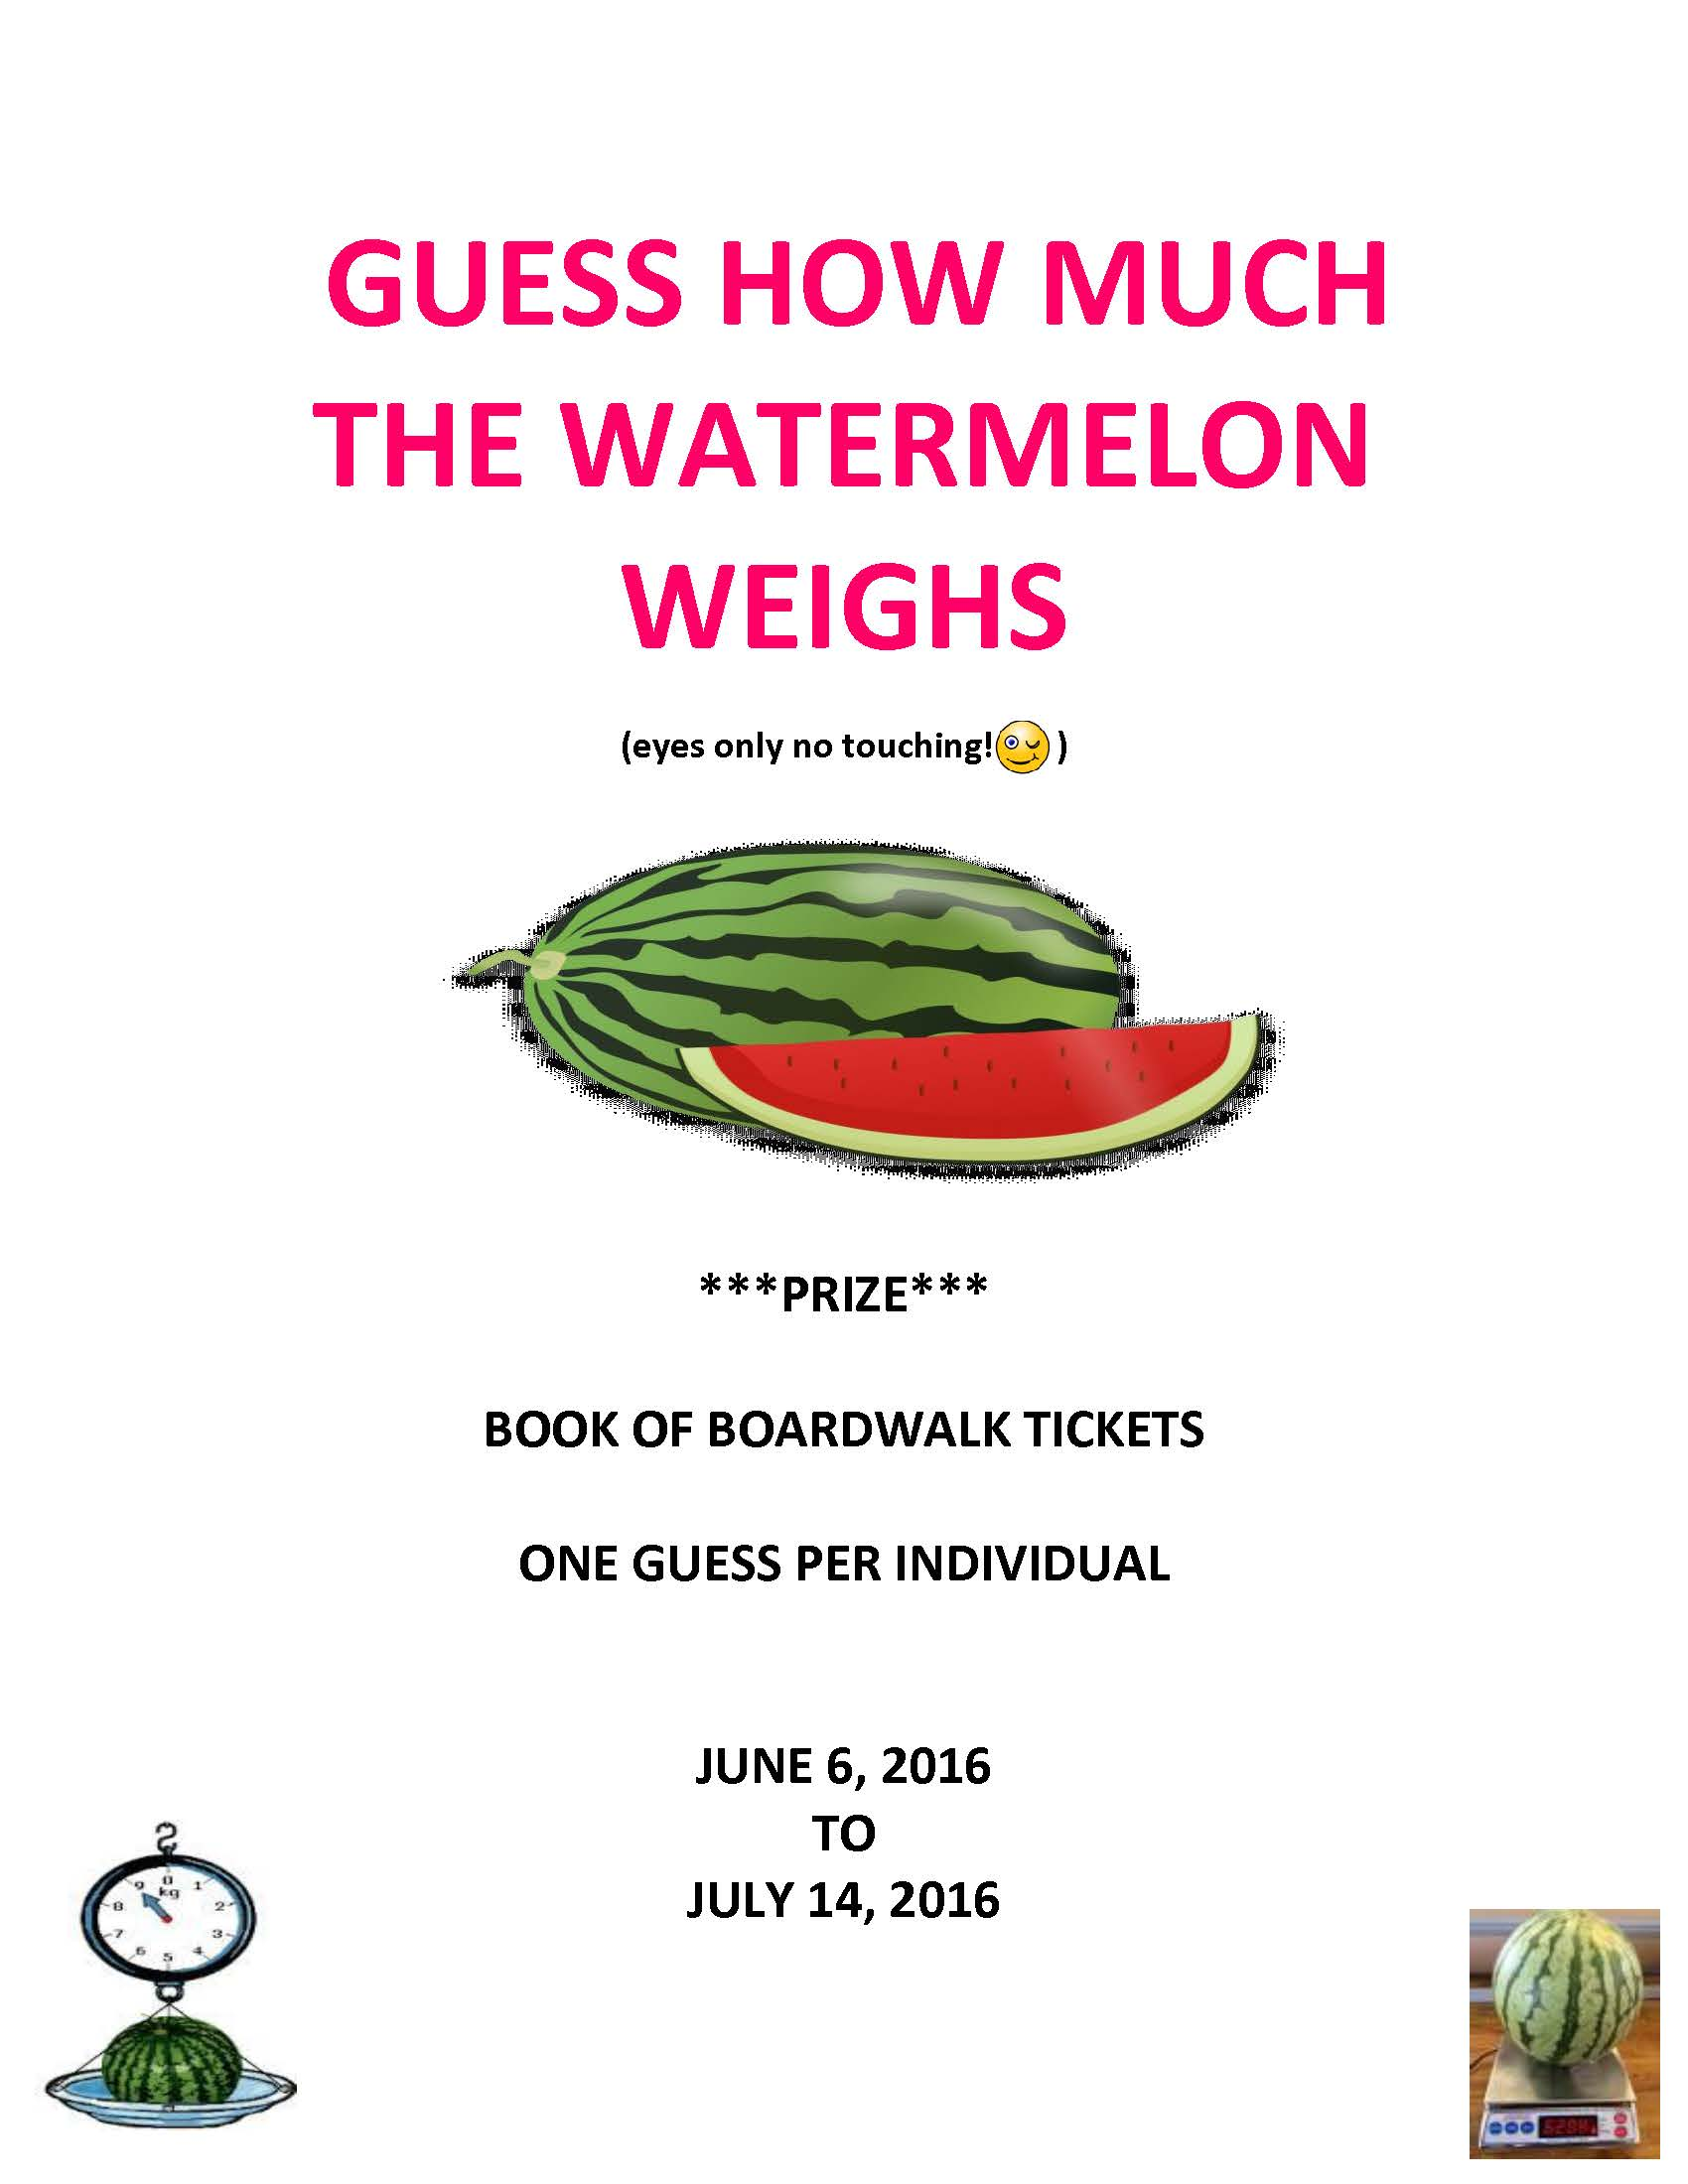 Guess the Weight of the Watermelon!